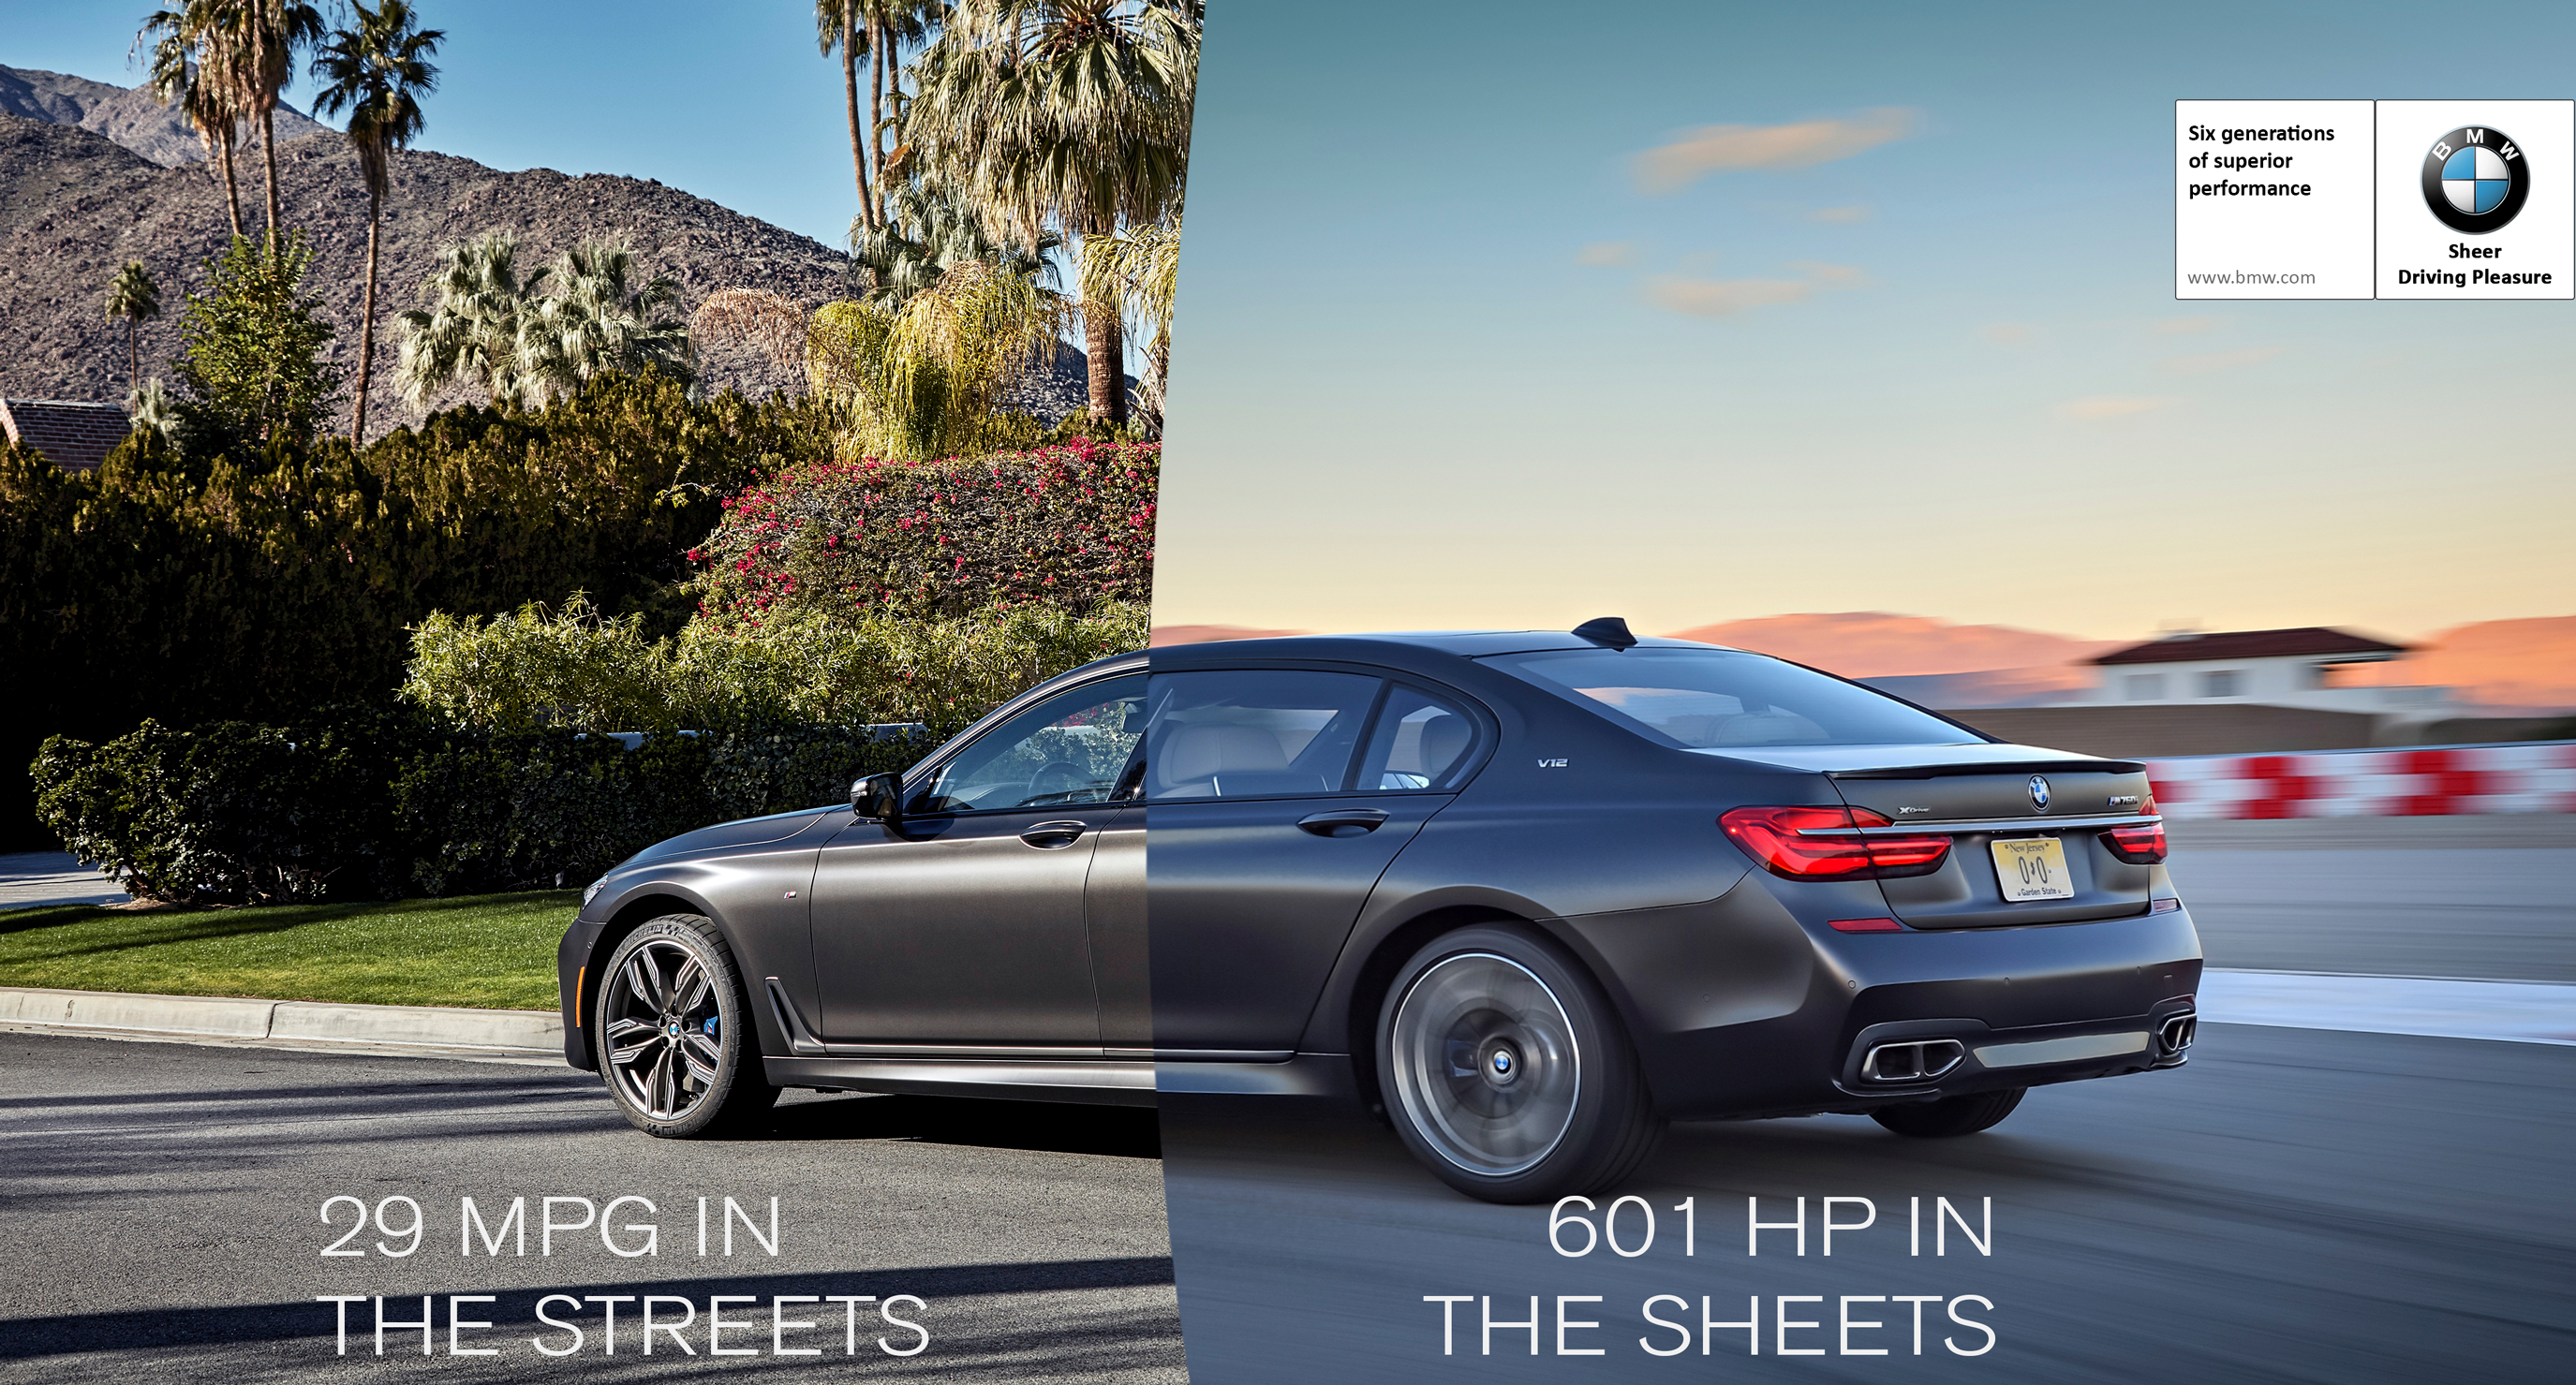 bmw outdoor advert by miami ad school the ultimate driving machine ads of the world. Black Bedroom Furniture Sets. Home Design Ideas